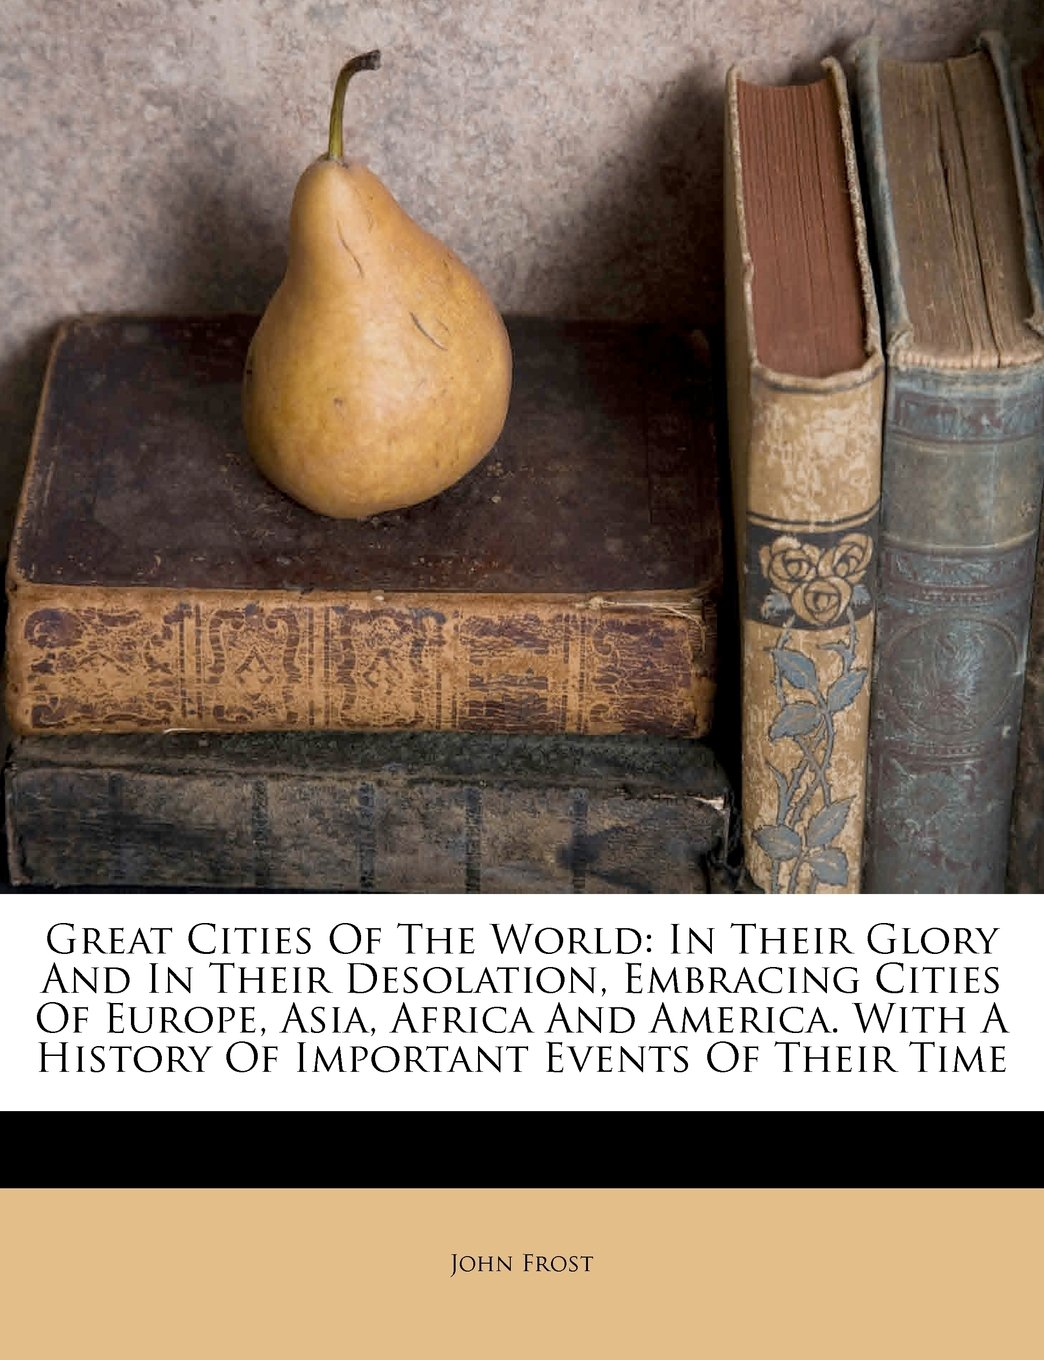 Great Cities Of The World: In Their Glory And In Their Desolation, Embracing Cities Of Europe, Asia, Africa And America. With A History Of Important Events Of Their Time PDF